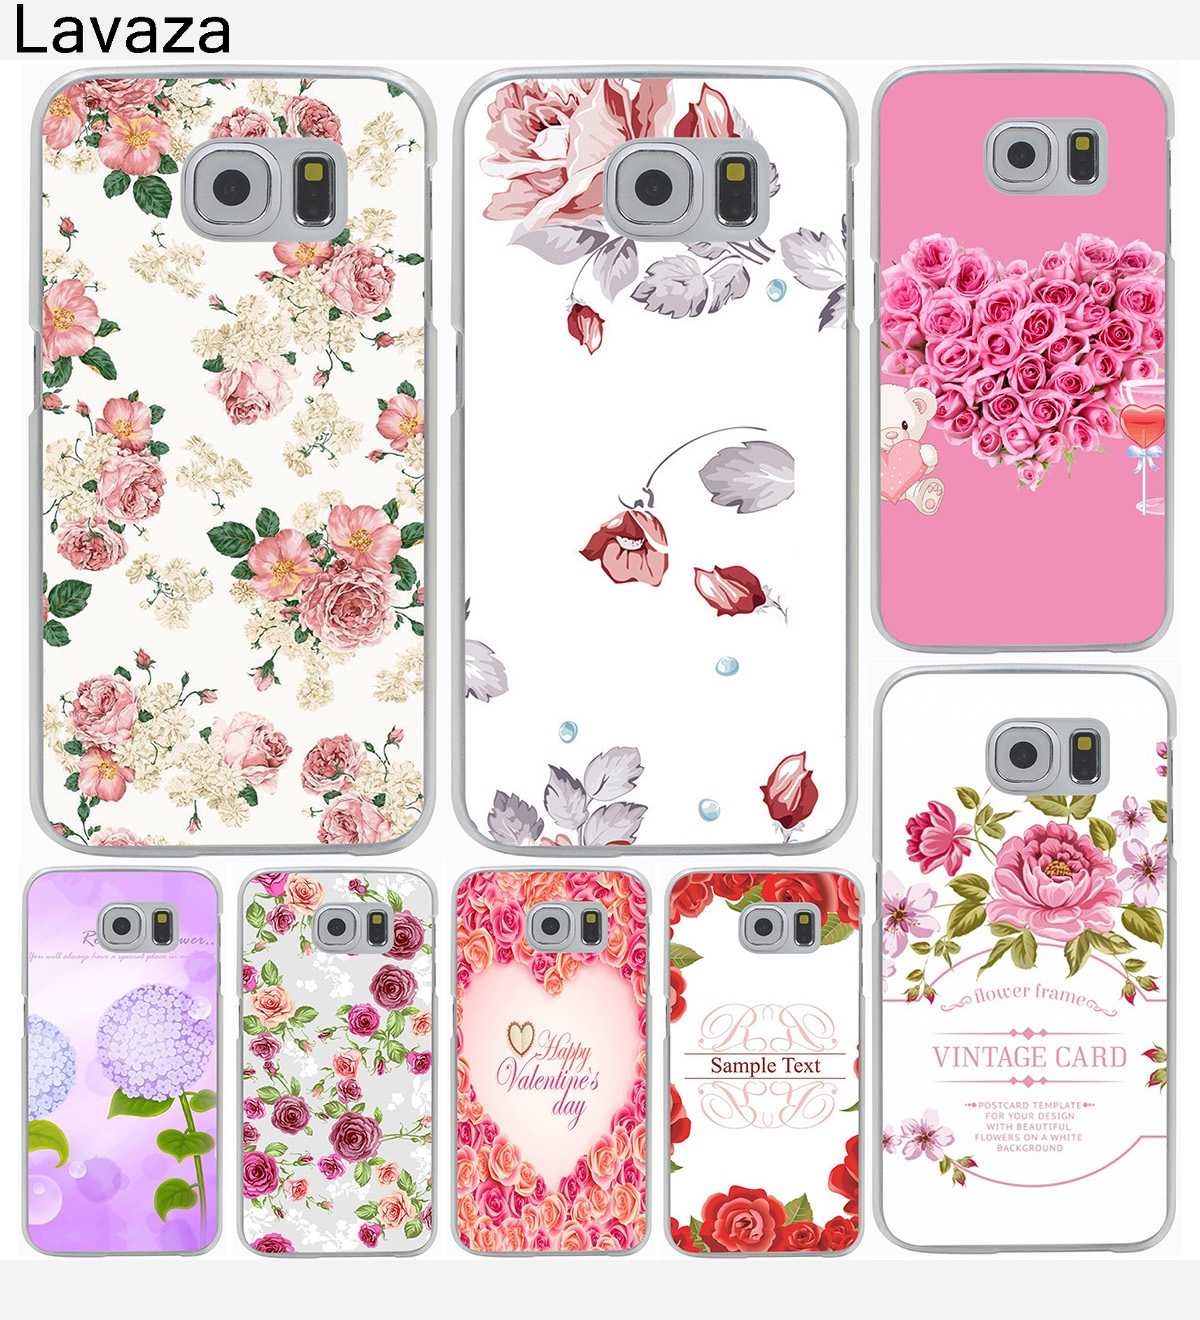 Deluxe Vintage Floral Flower Hard Cover Case for Galaxy S3 S4 S5 & Mini S6 S7 S8 Edge Plus